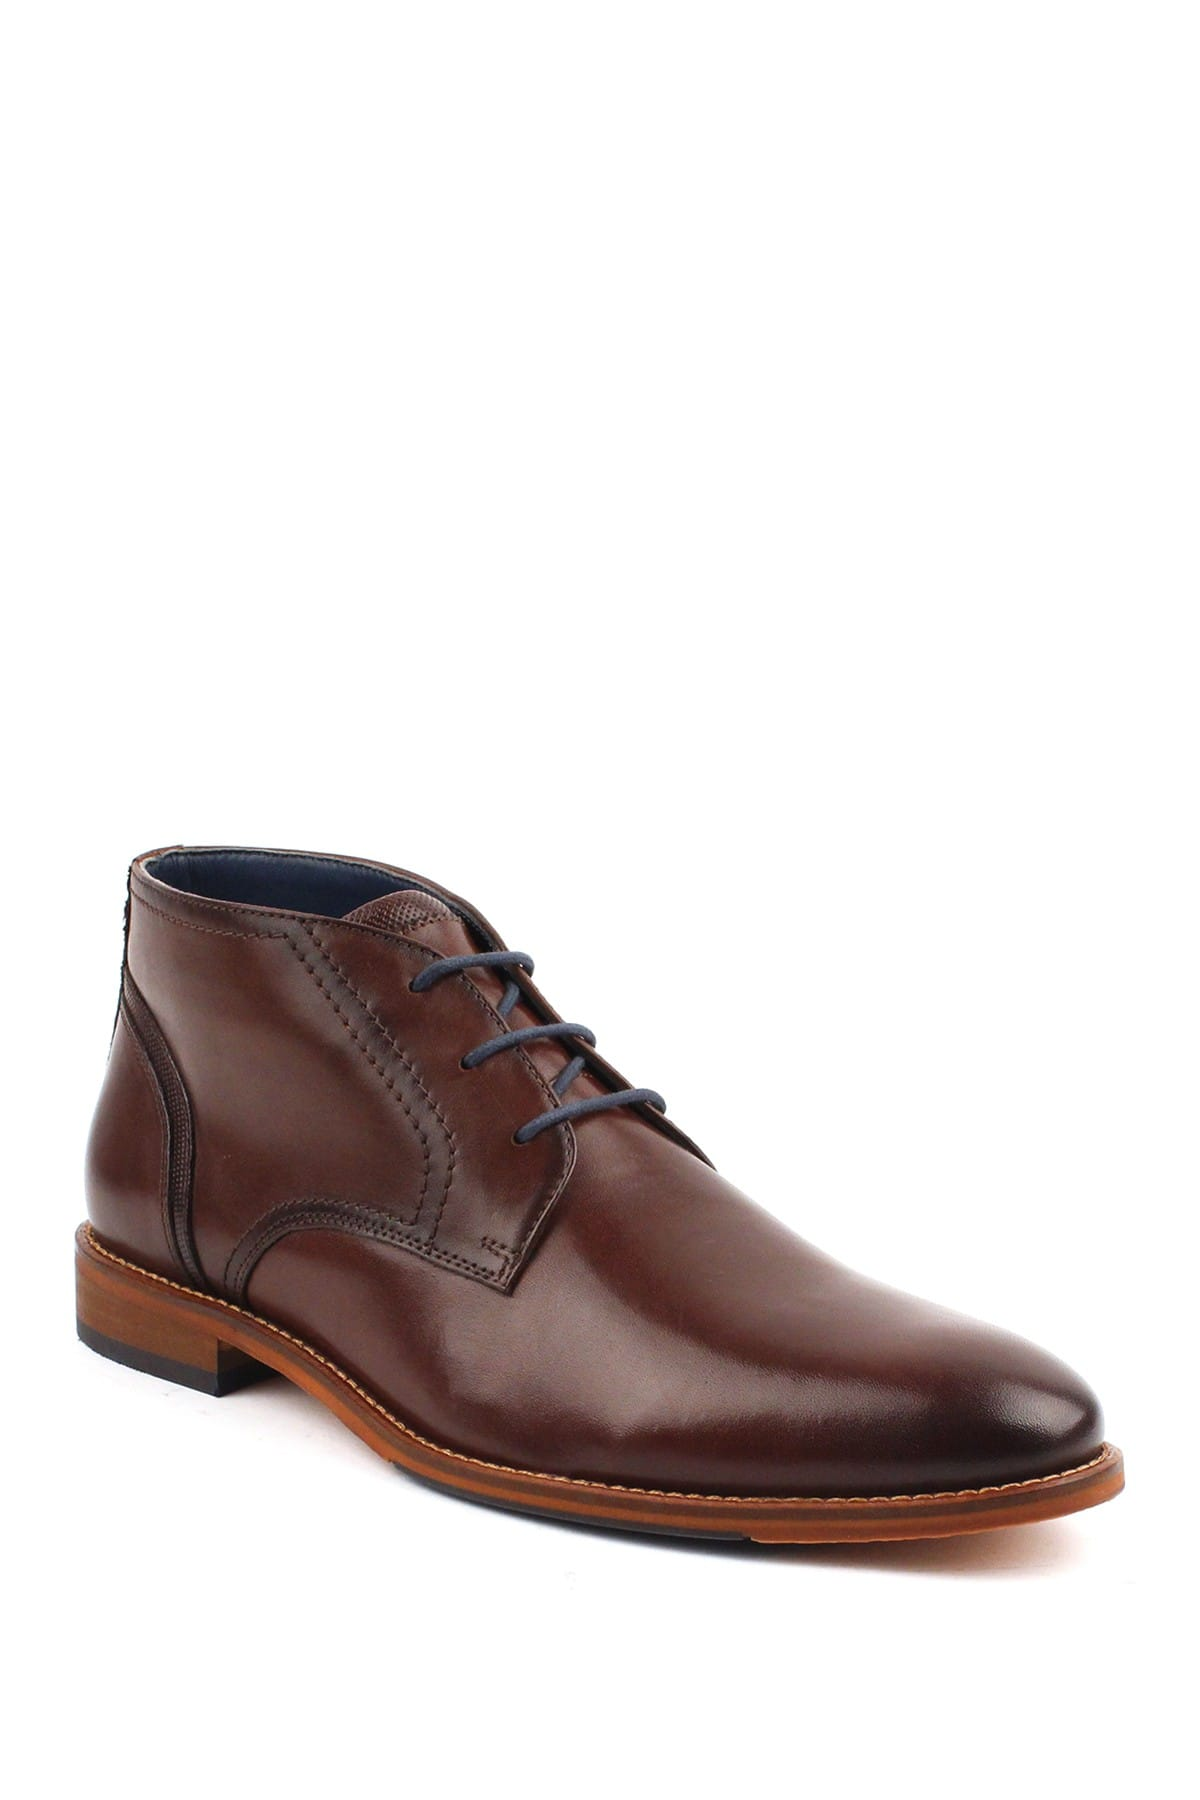 Modern Fiction Men's Mimicry Leather Boot (Cognac) $52.48 + Free shipping